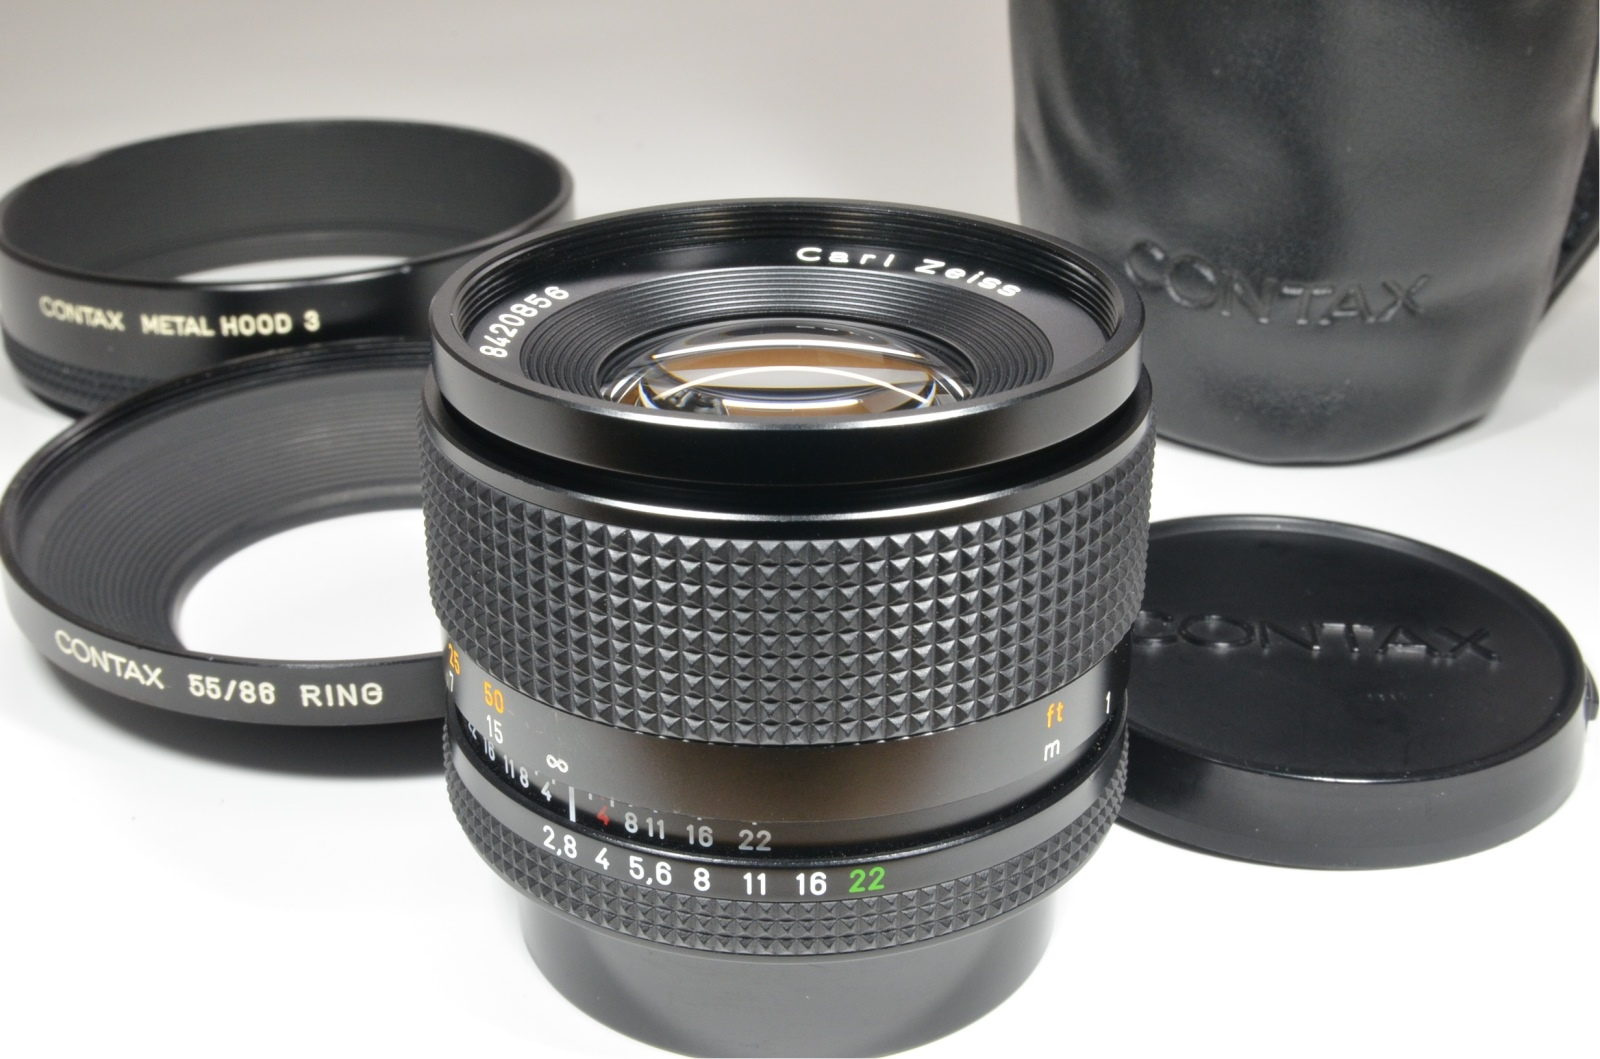 contax carl zeiss sonnar t* 85mm f2.8 mmg with metal hood 3